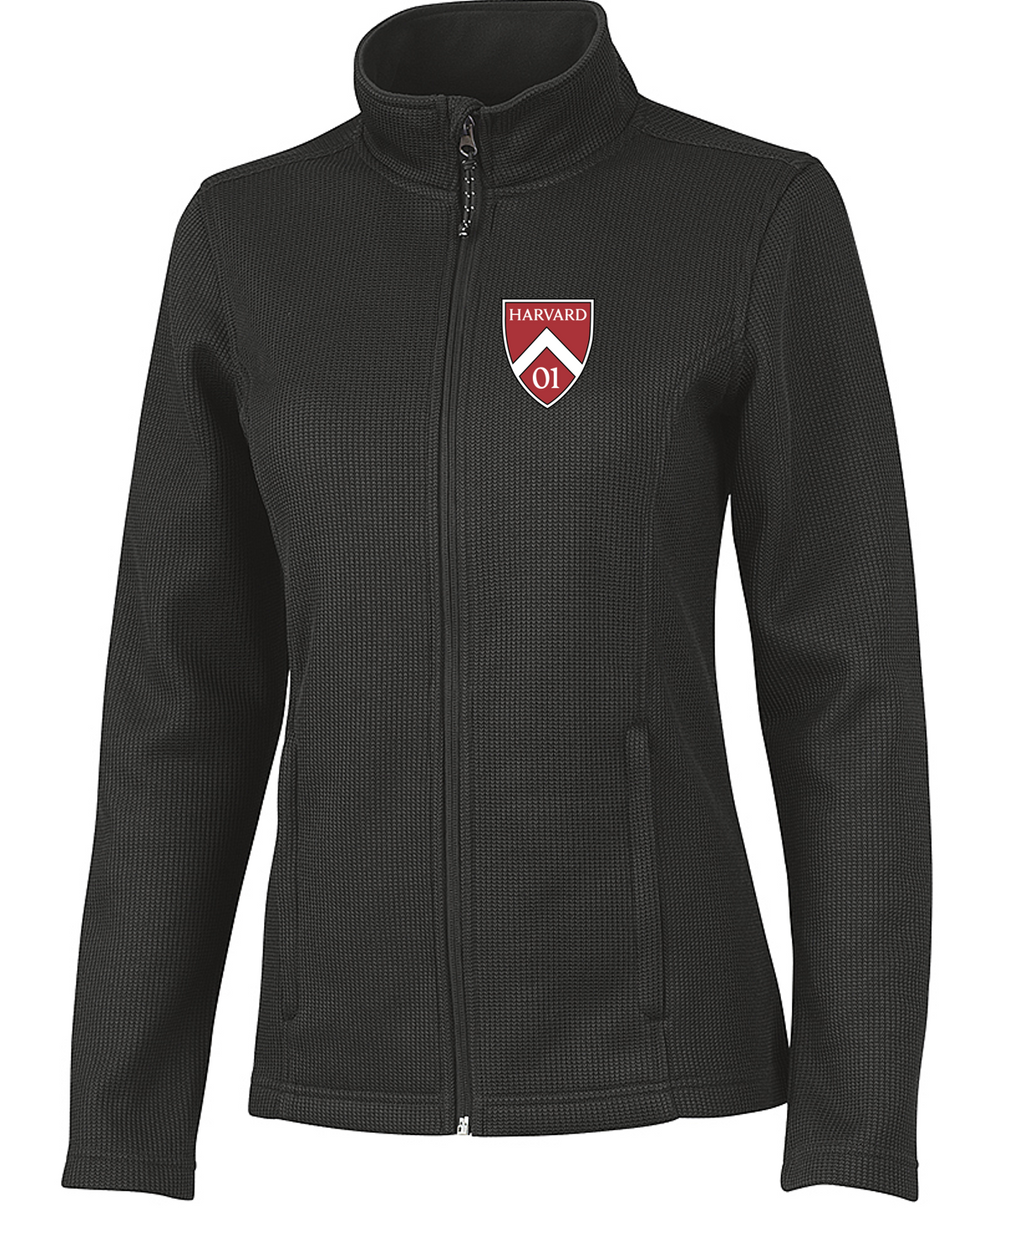 Harvard Class of 2001 20th Reunion Women's Rib Knit Jacket